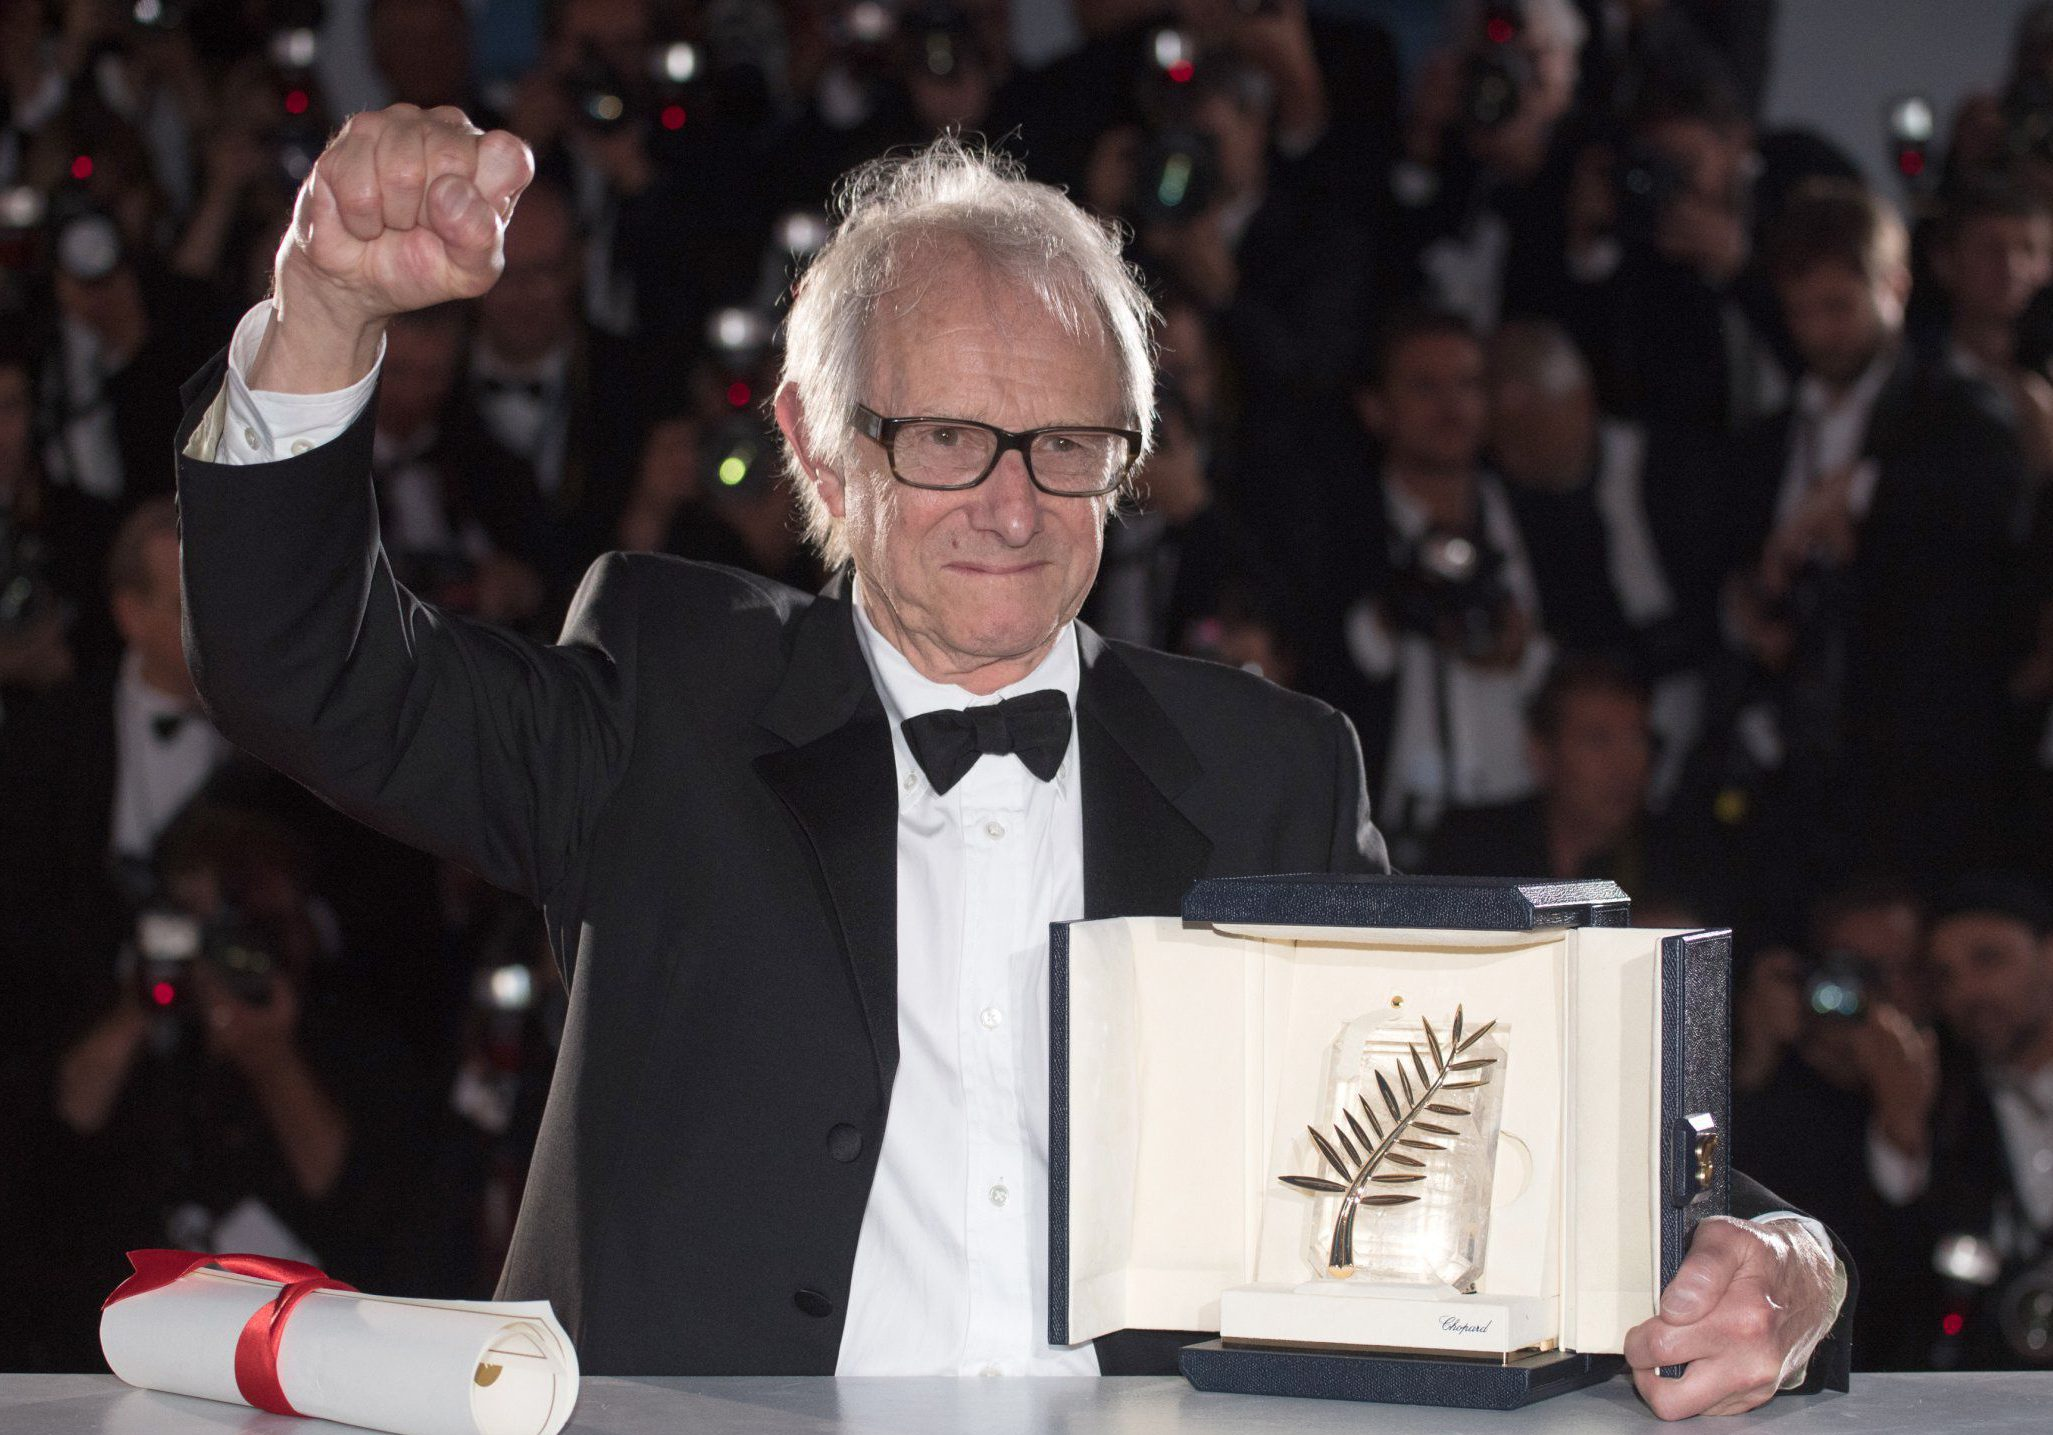 Director Ken Loach complains TV is full of 'fake nostalgia' thanks to Downton Abbey and Victoria